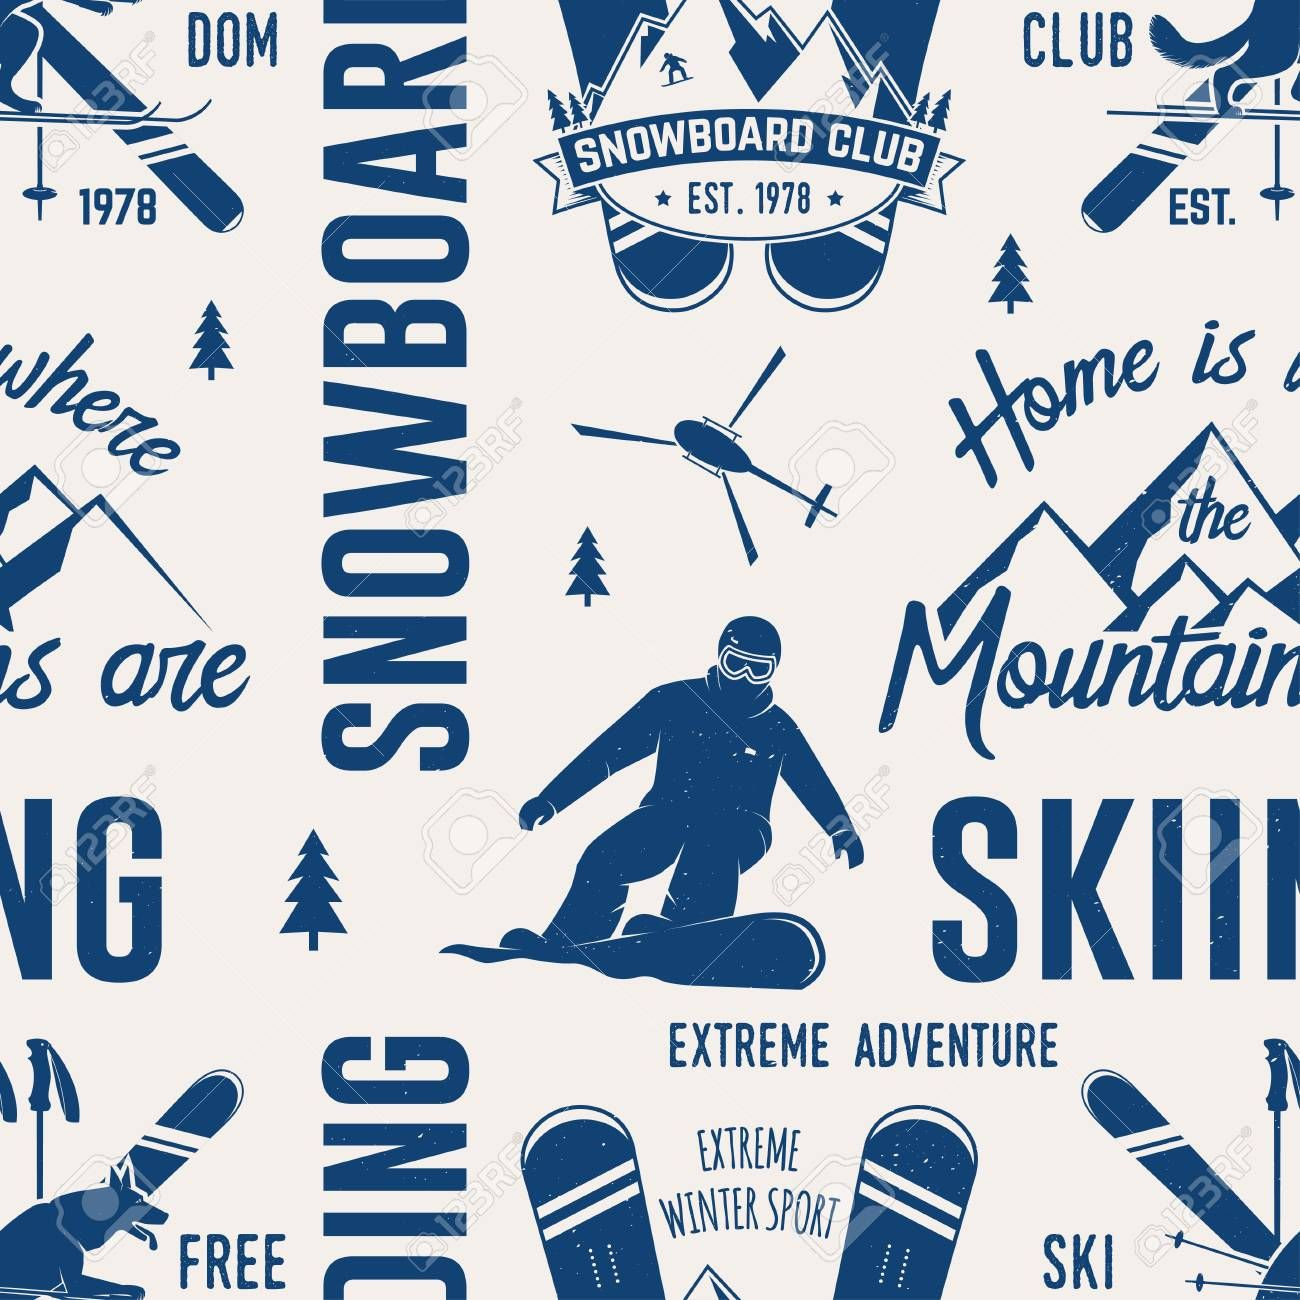 Ski And Snowboard Club Seamless Pattern Vector Illustration Concept For Shirt Print S Vintage Typography Design Social Media Design Graphics Winter Extreme